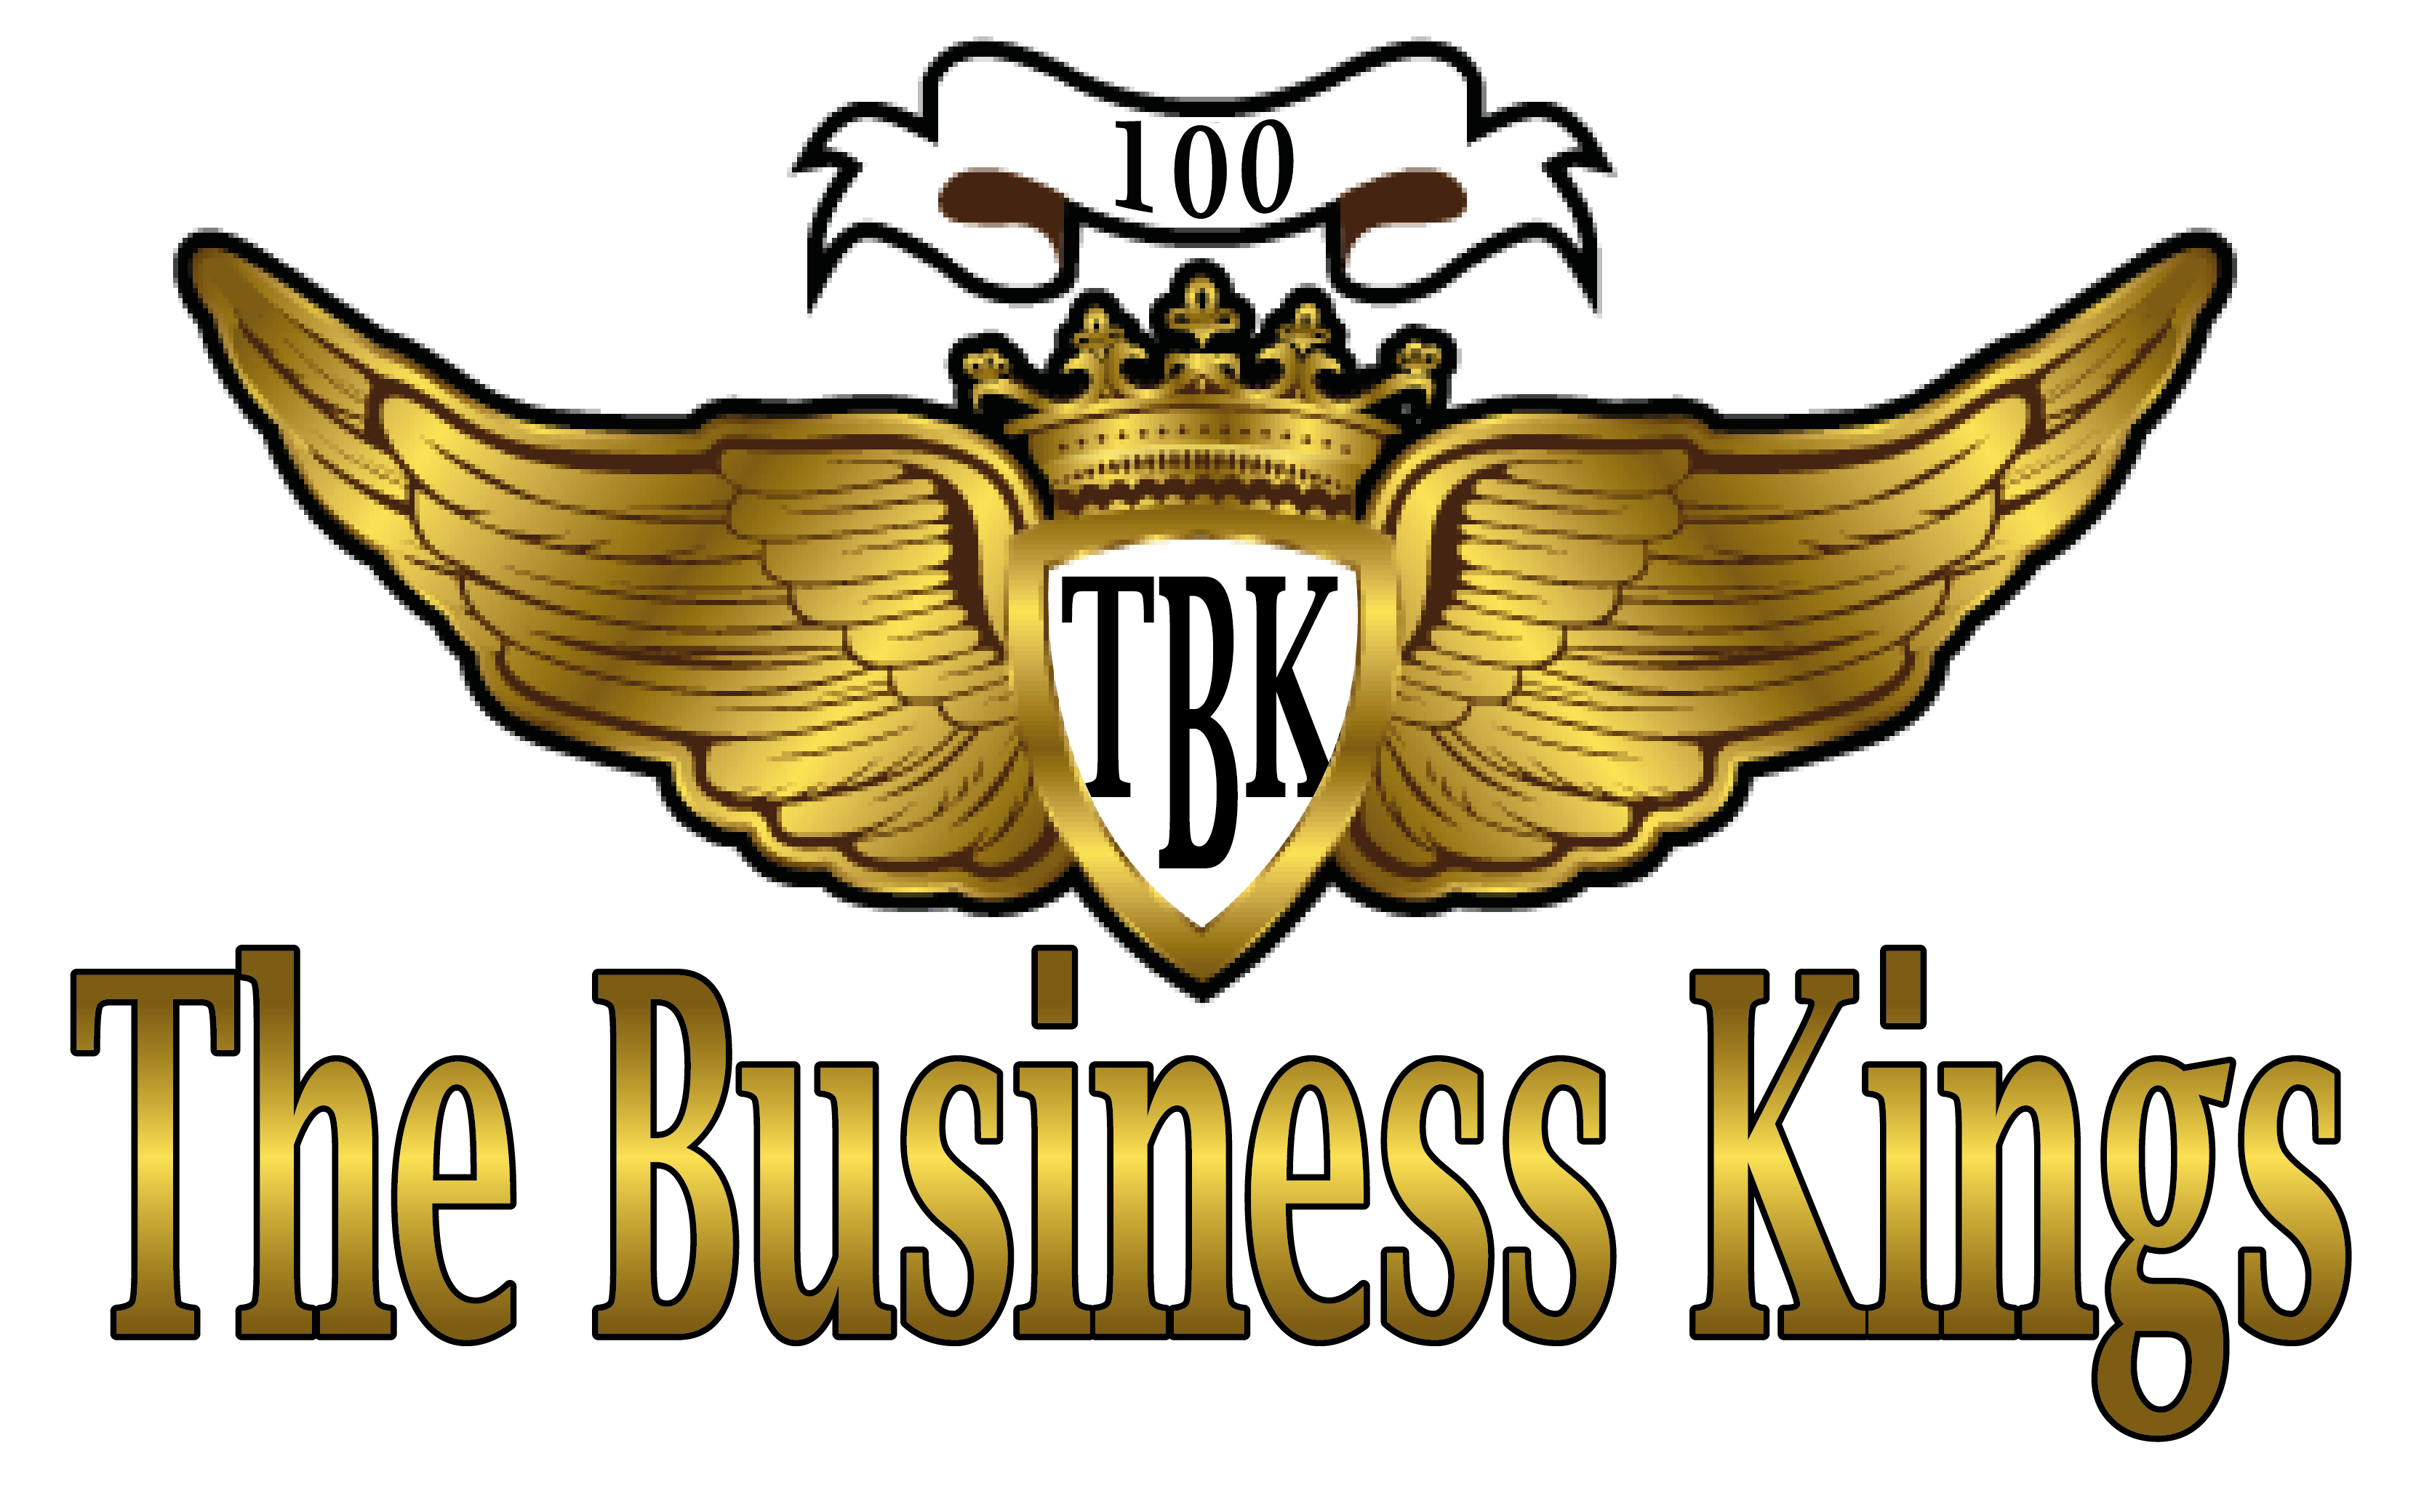 The Business Kings